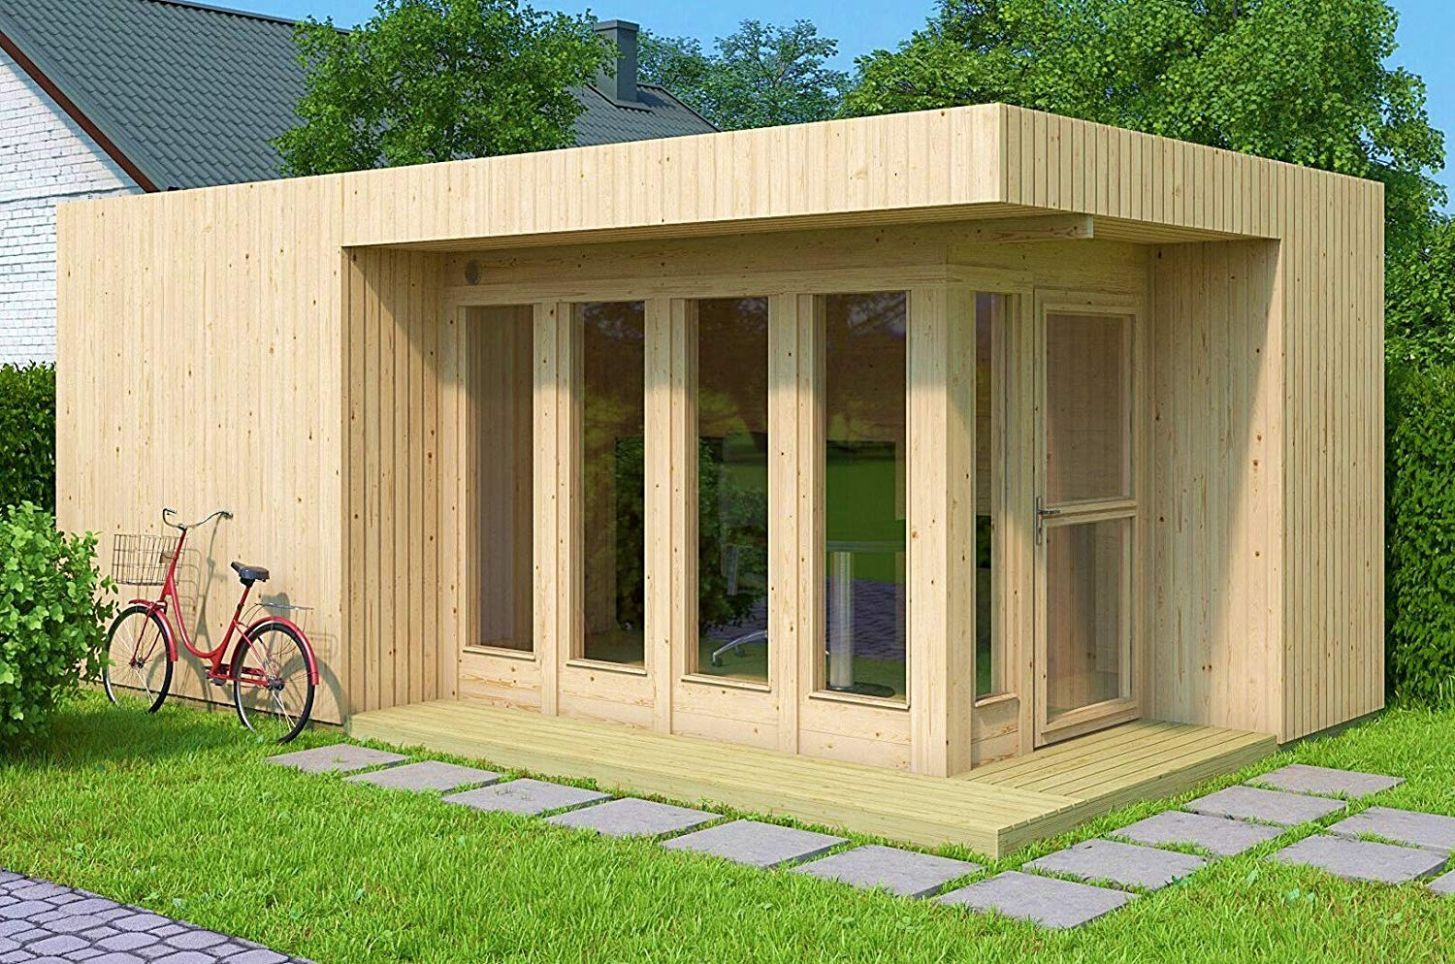 Amazon sells a DIY tiny house kit you can build yourself in a few ..